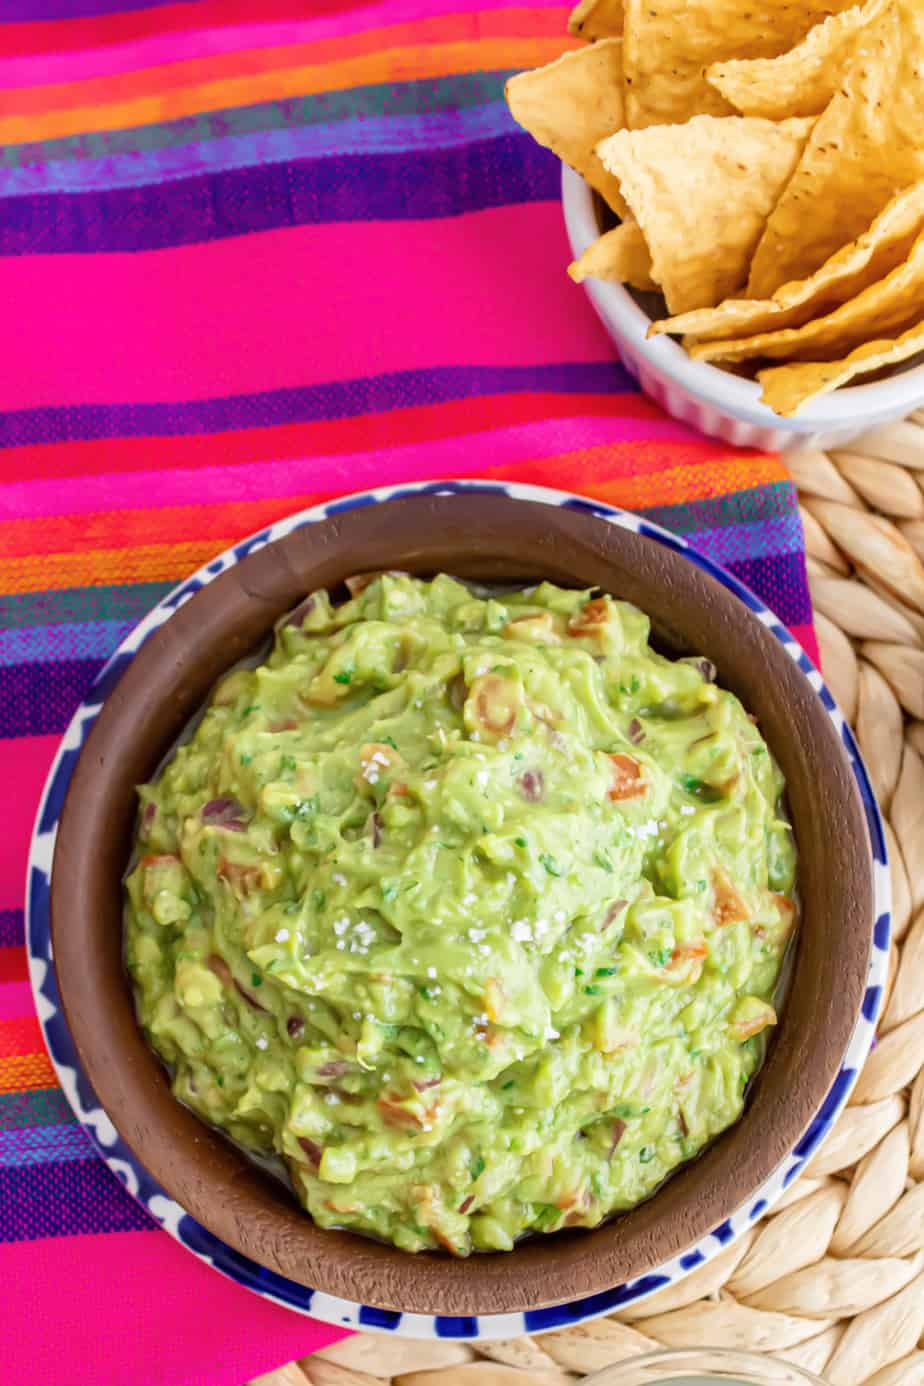 Guacamole in a bowl from overhead with a bowl of chips